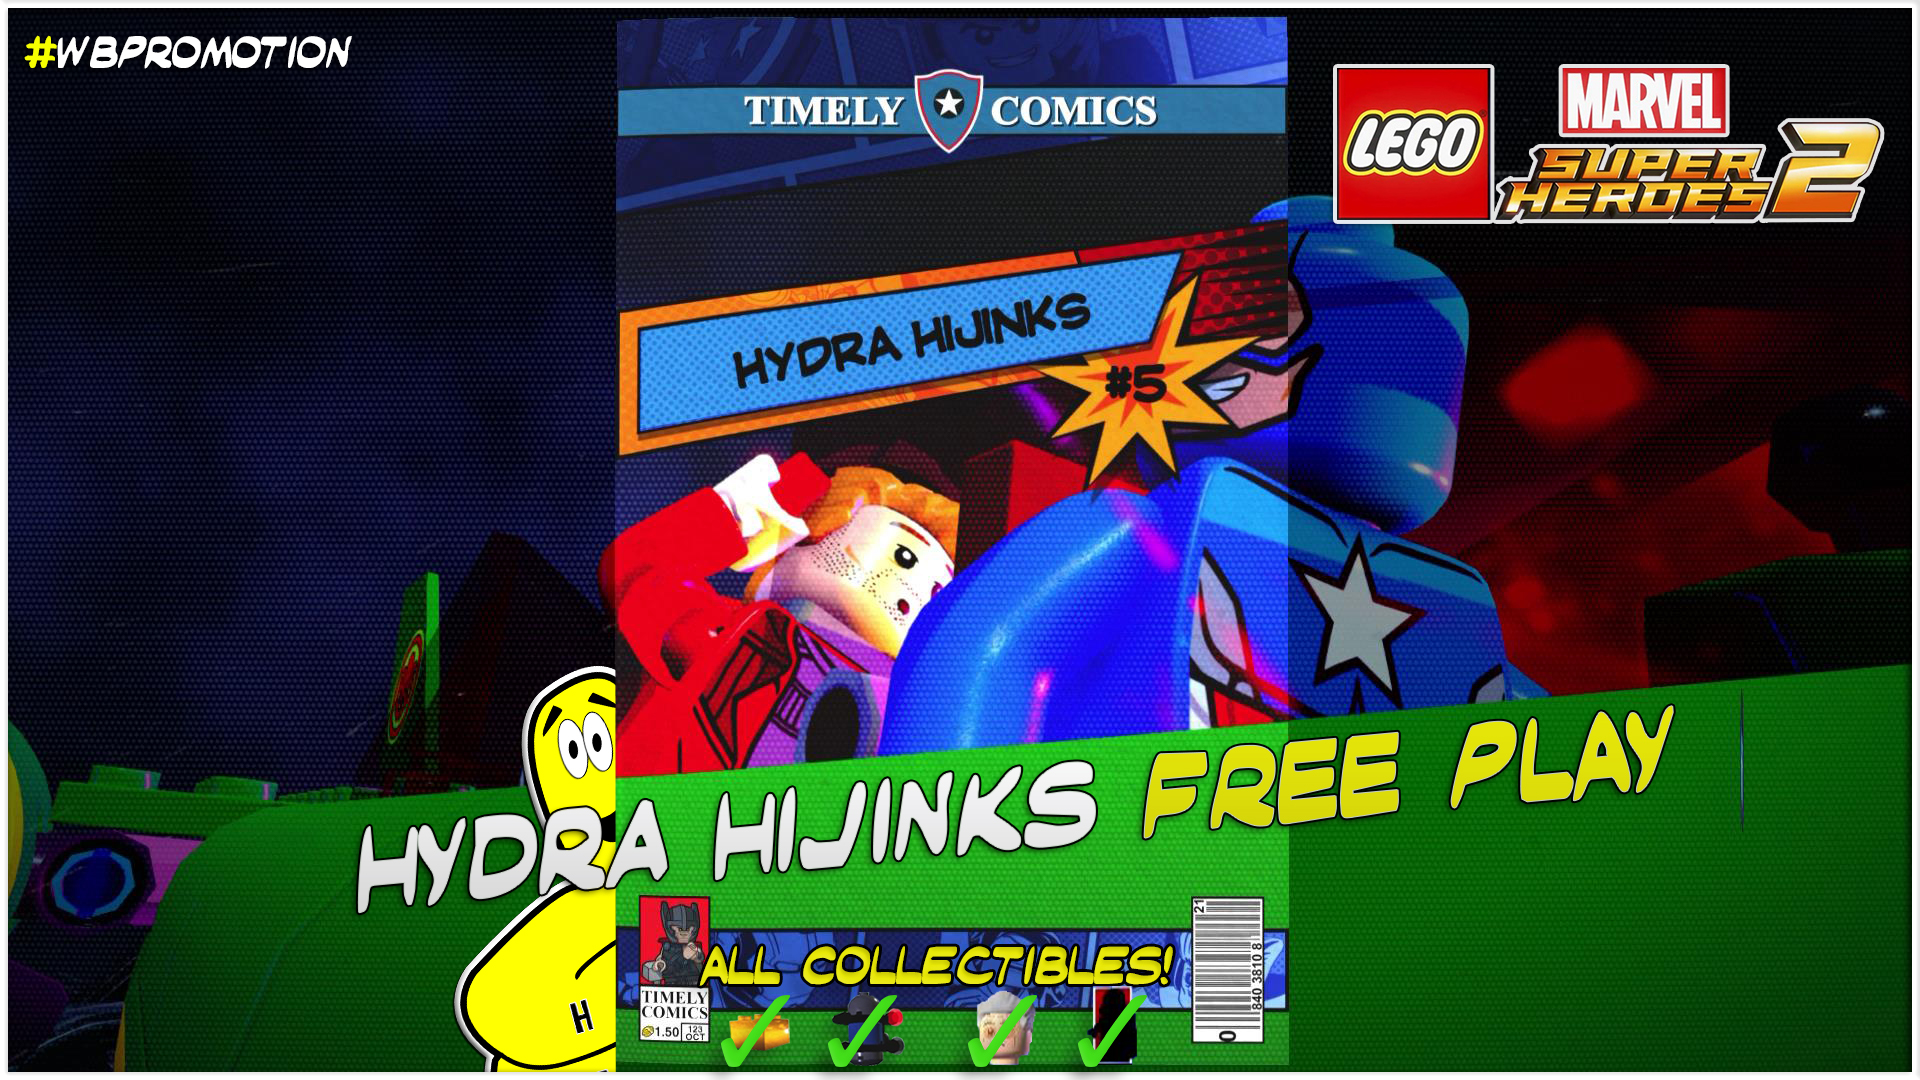 Lego Marvel Superheroes 2: Level 5 / Hydra Hijinks FREE PLAY (All Collectibles) – HTG